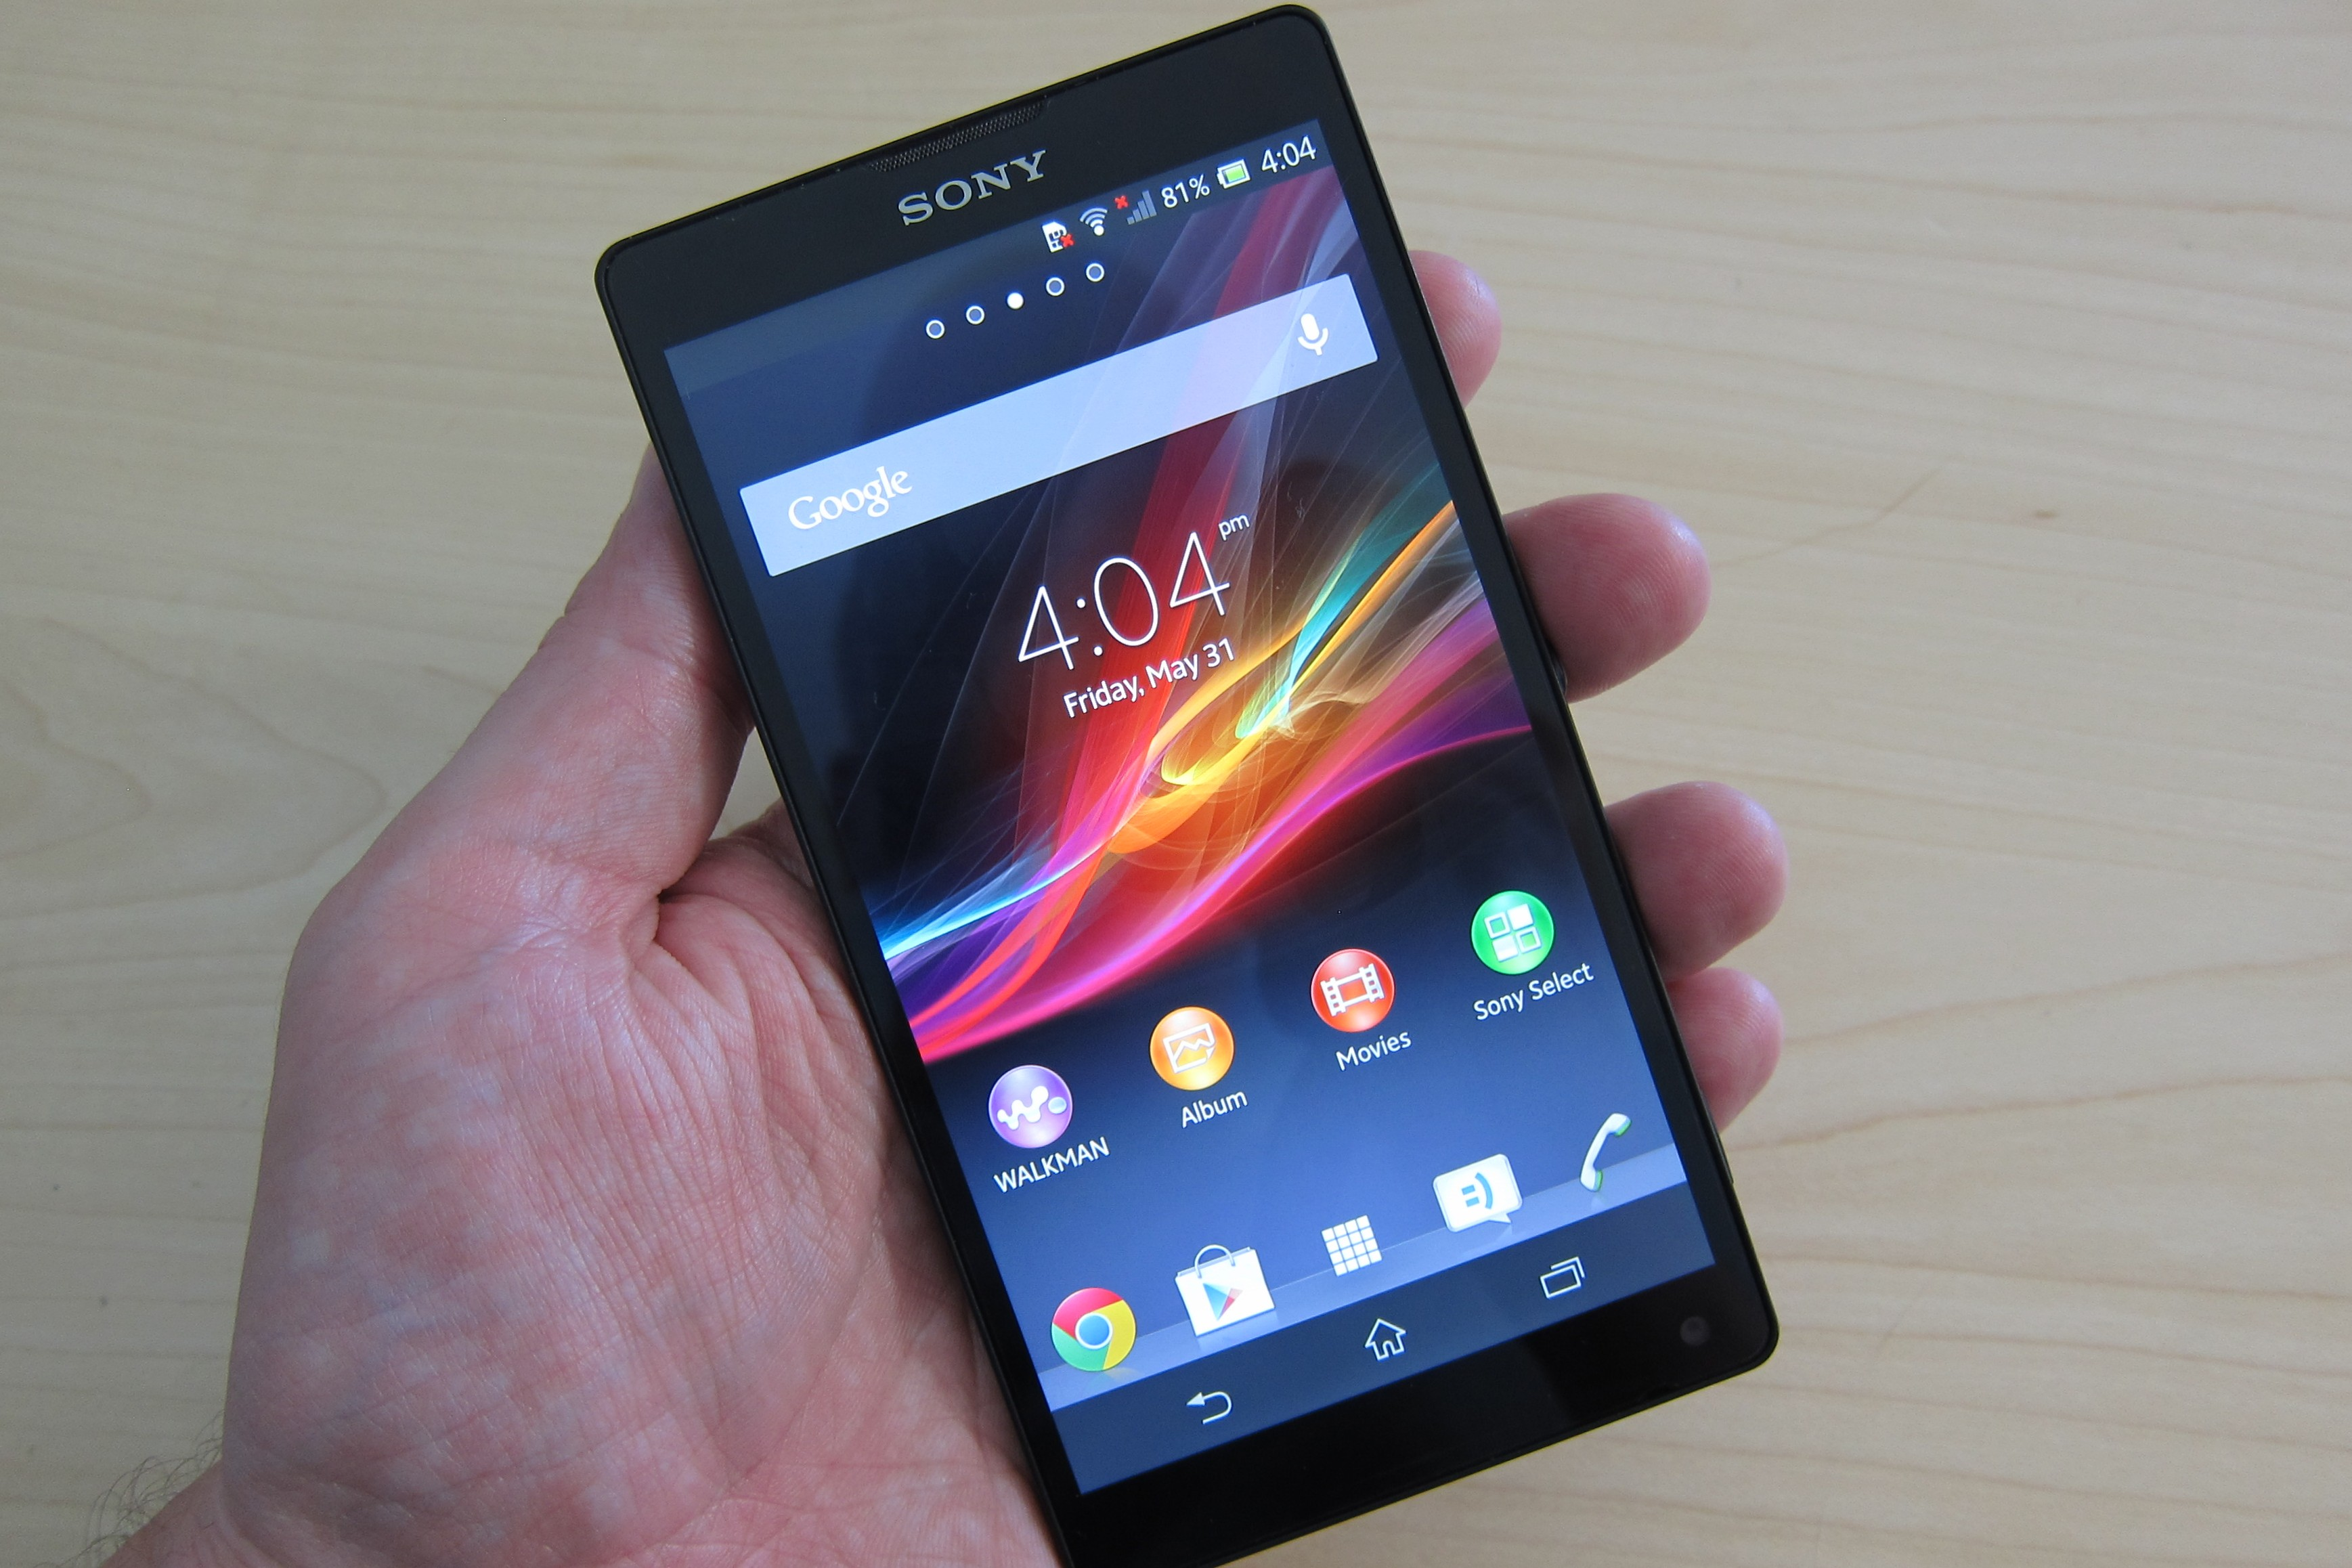 Xperia ZL in hand